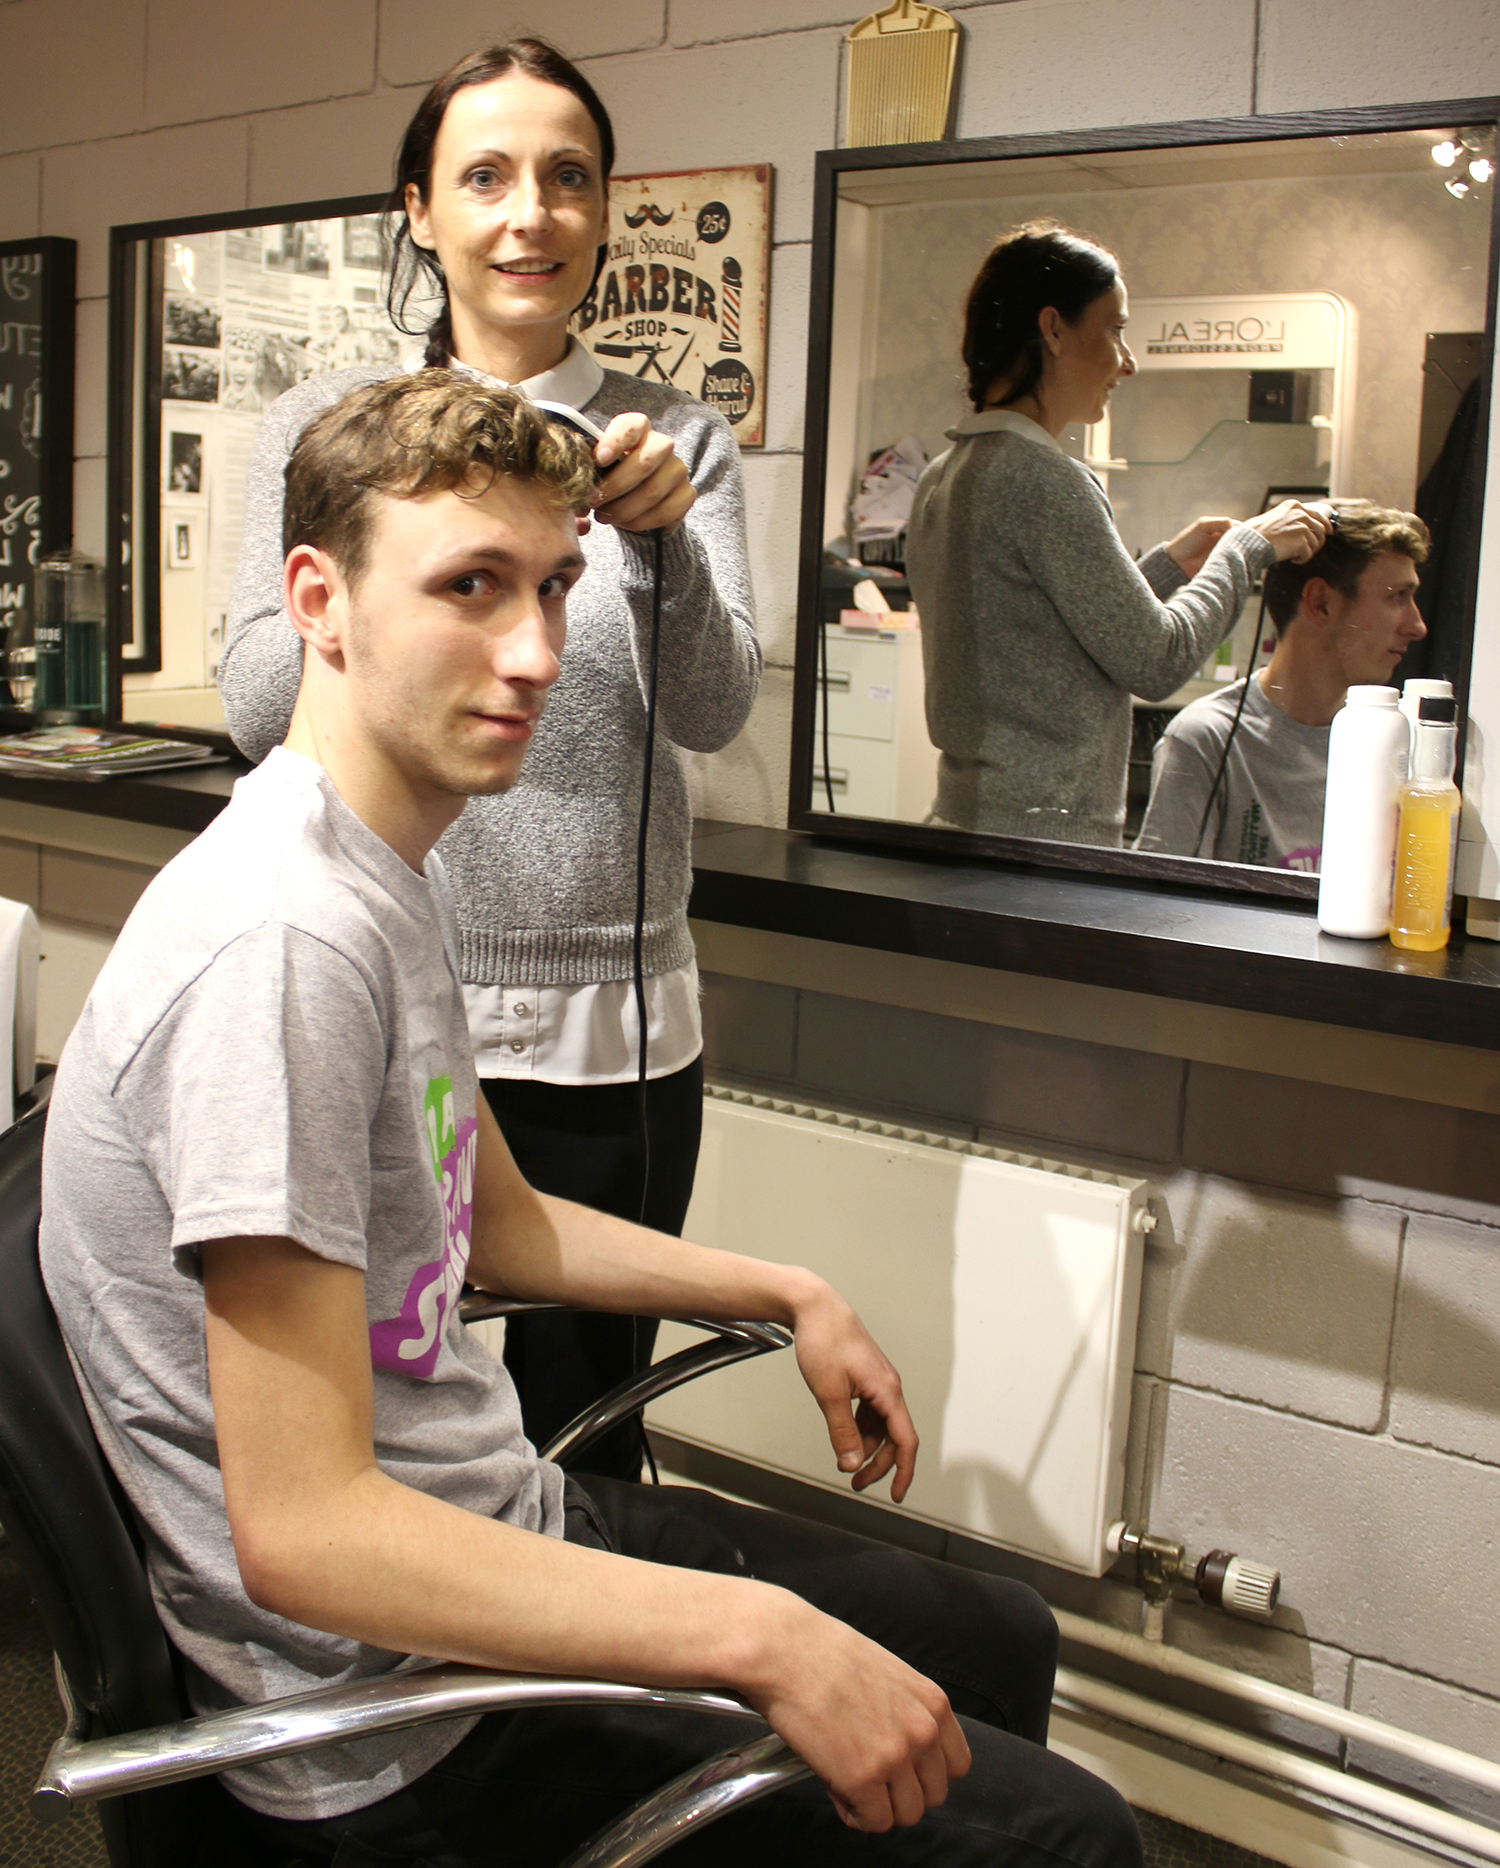 Braving The Shave